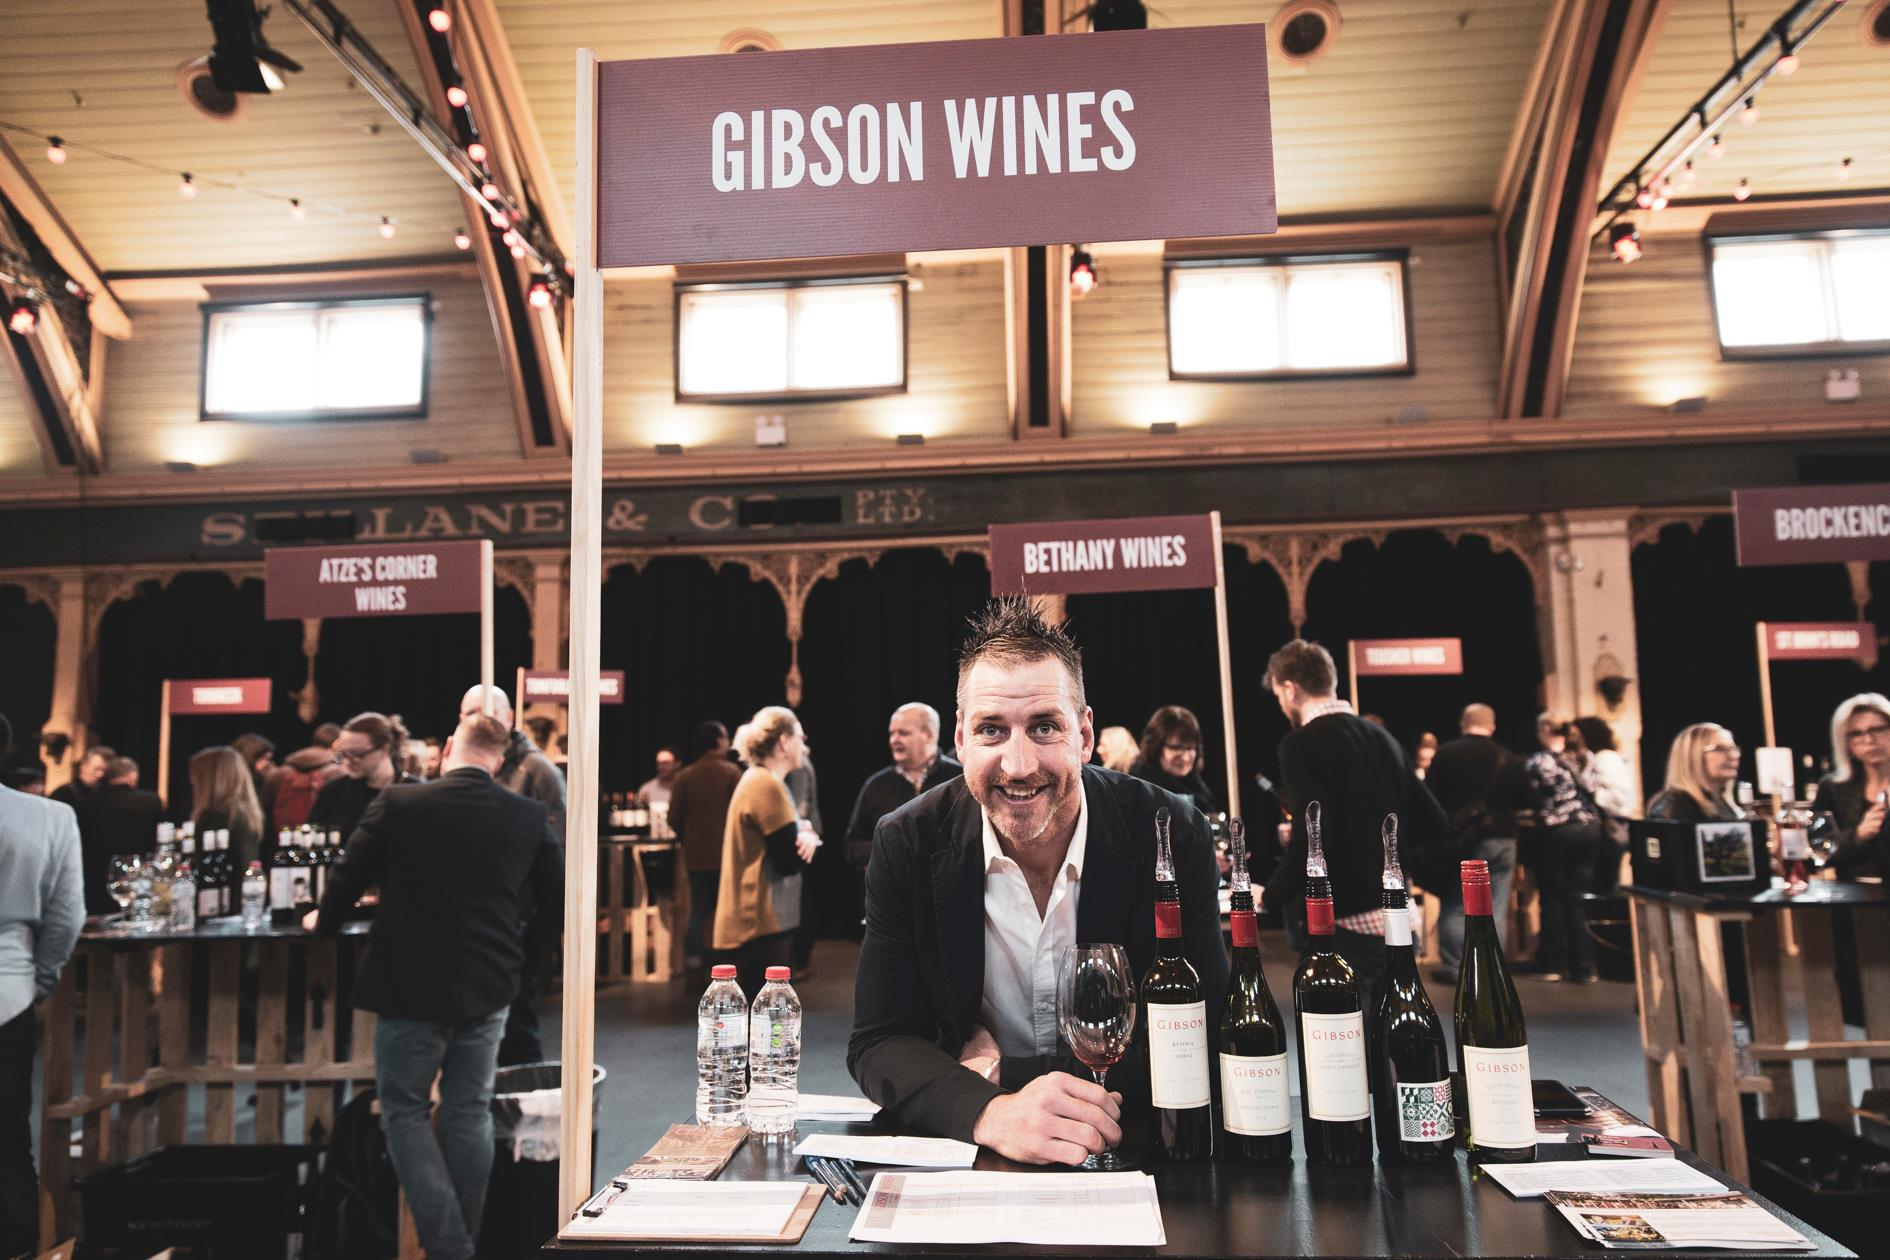 Barossa Be Consumed wine and food event Melbourne 2018 Gibson Wines